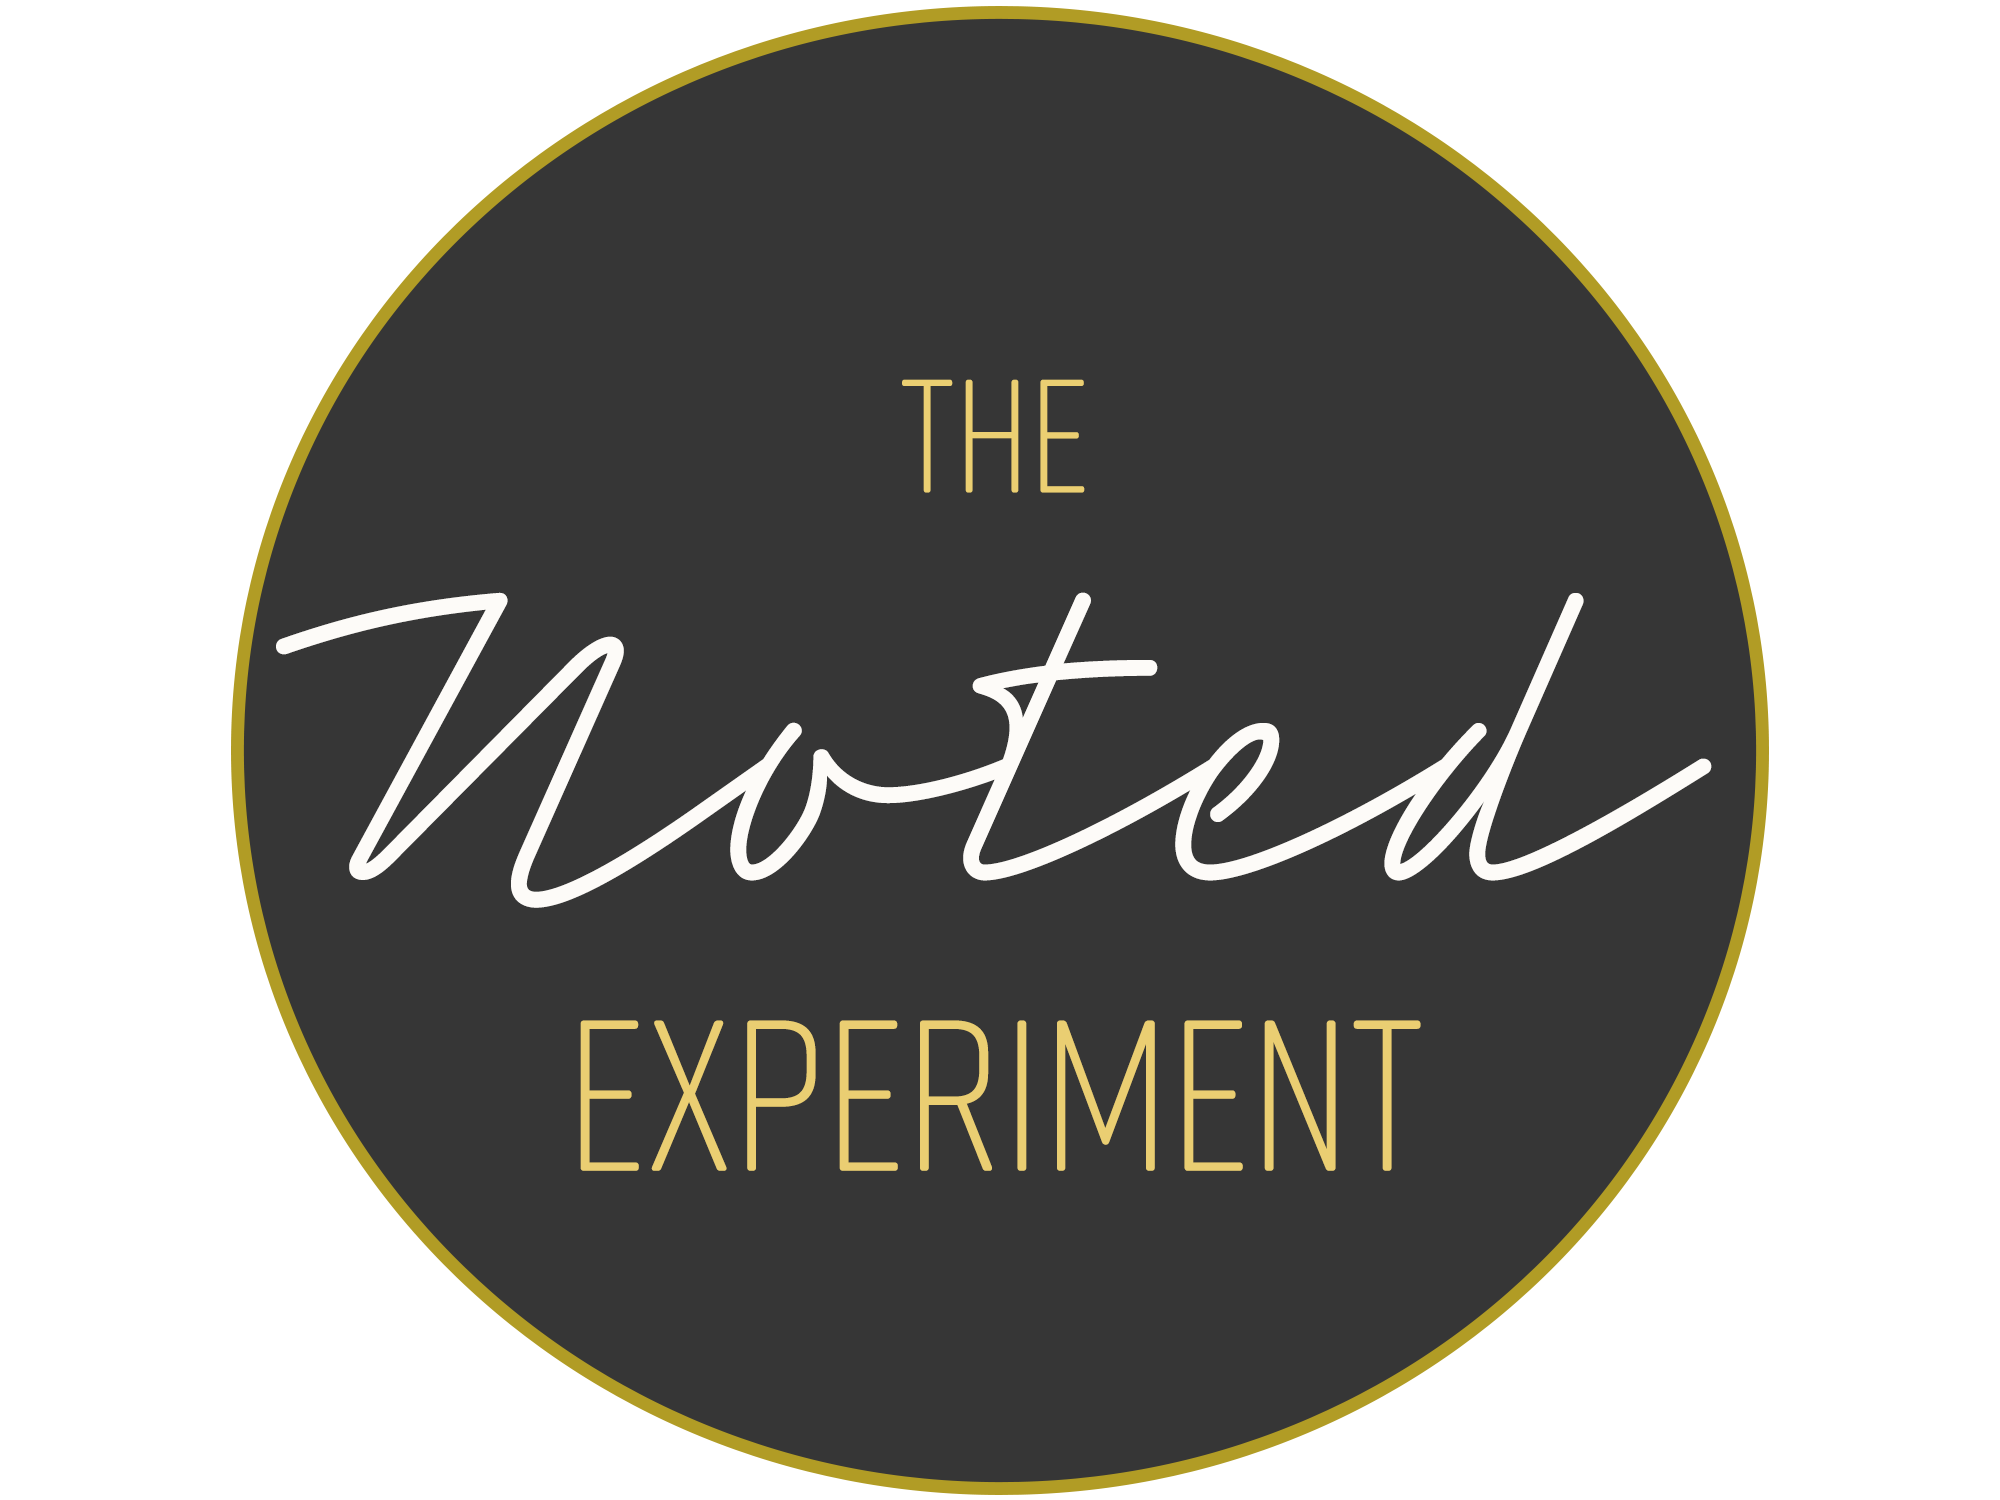 THE NOTED EXPERIMENT